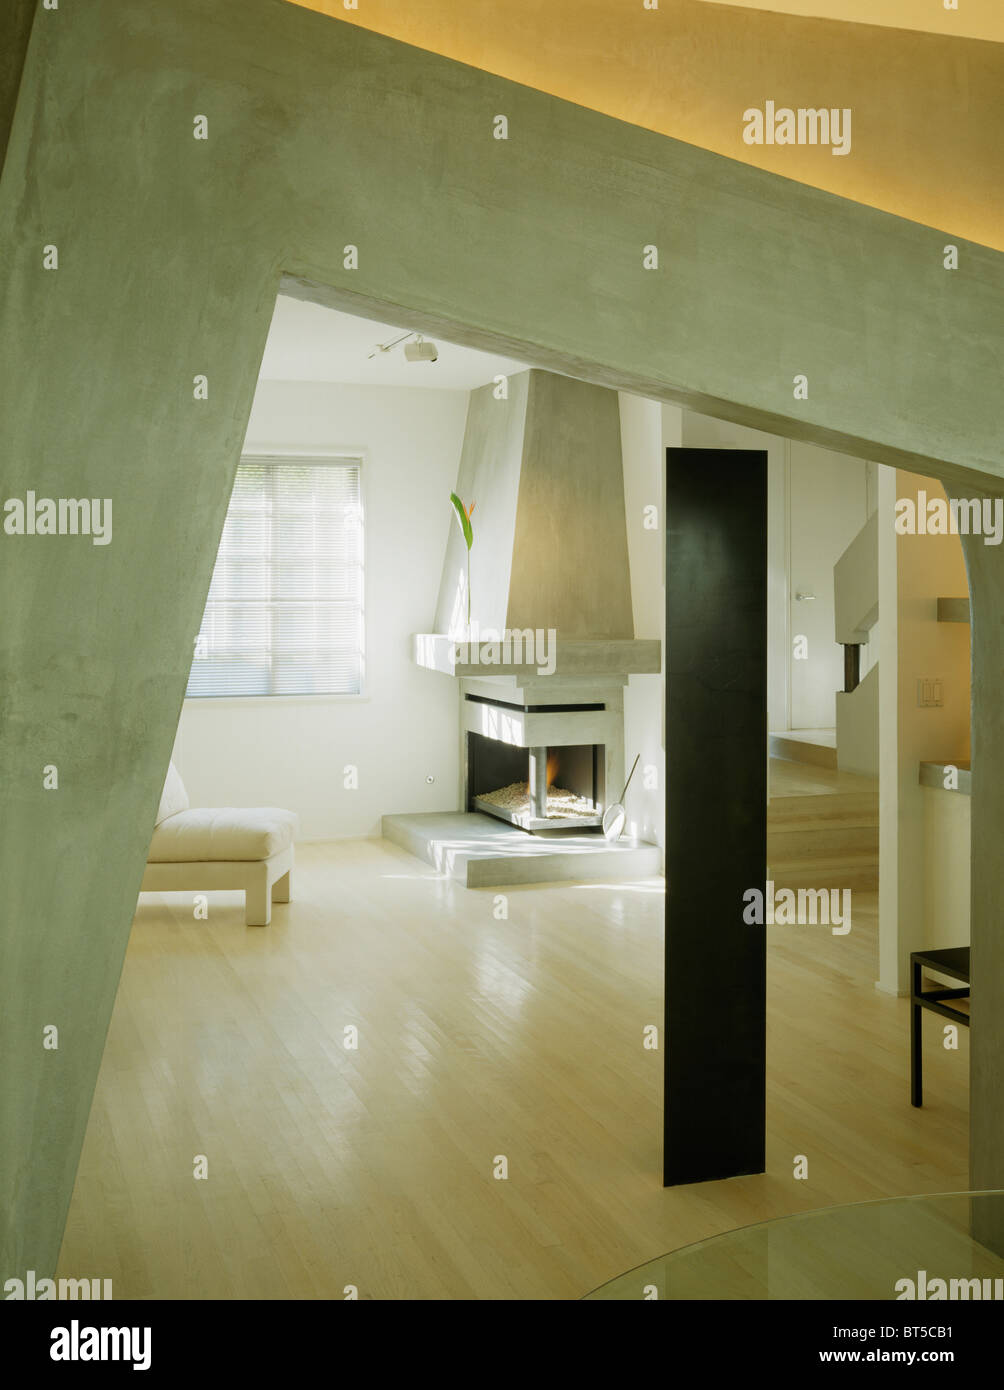 cement plaster arch with stucco finish in modern living room with